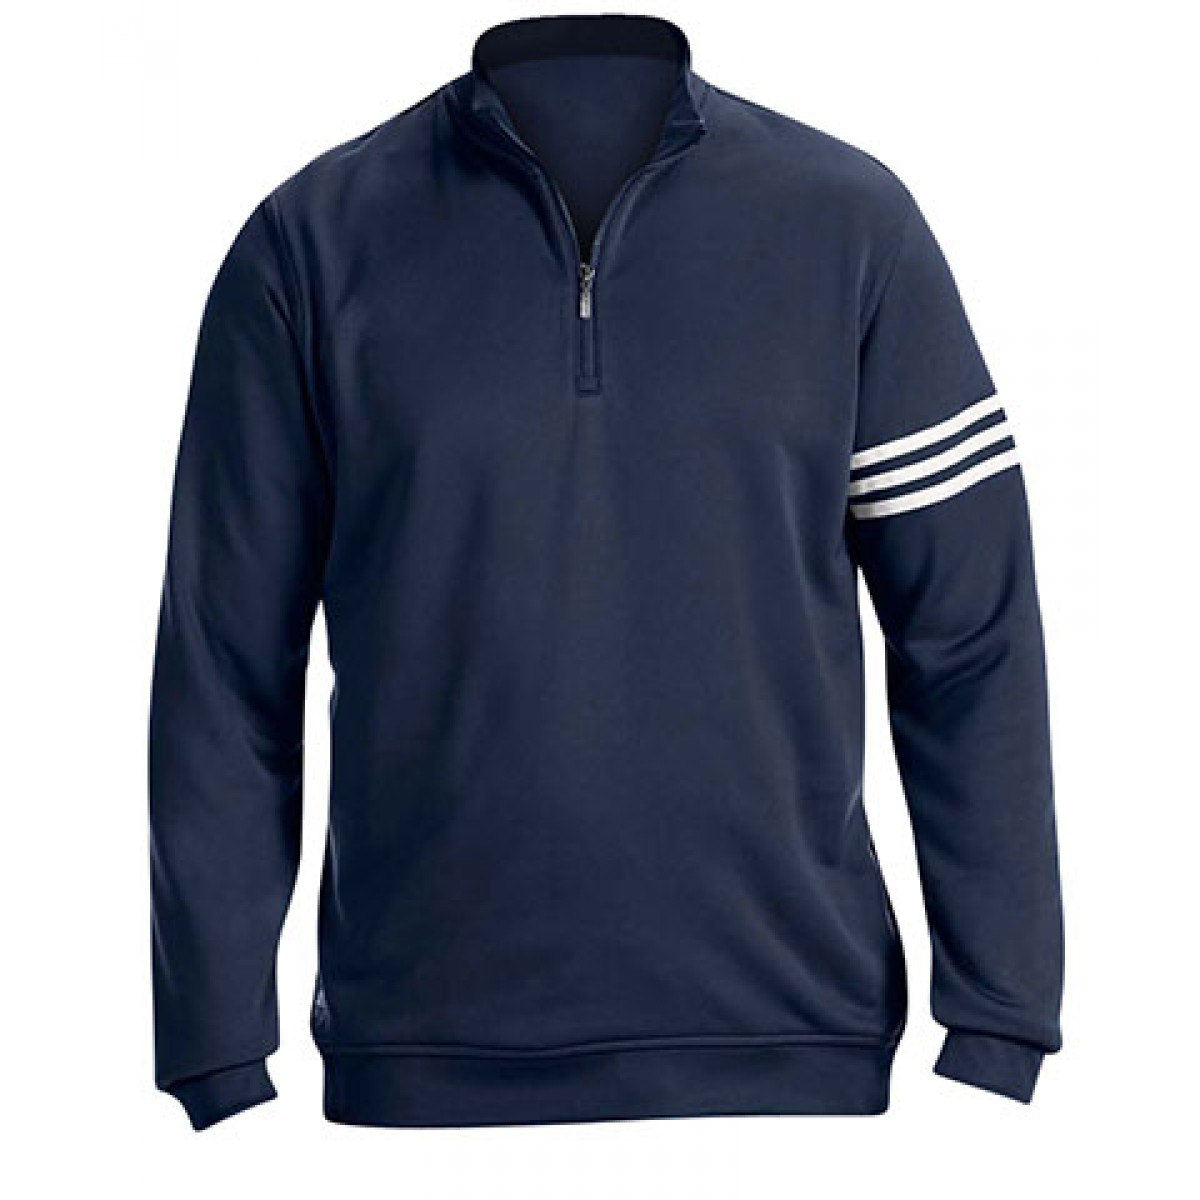 Adidas Men's 3-Stripes Pullover-Navy-M